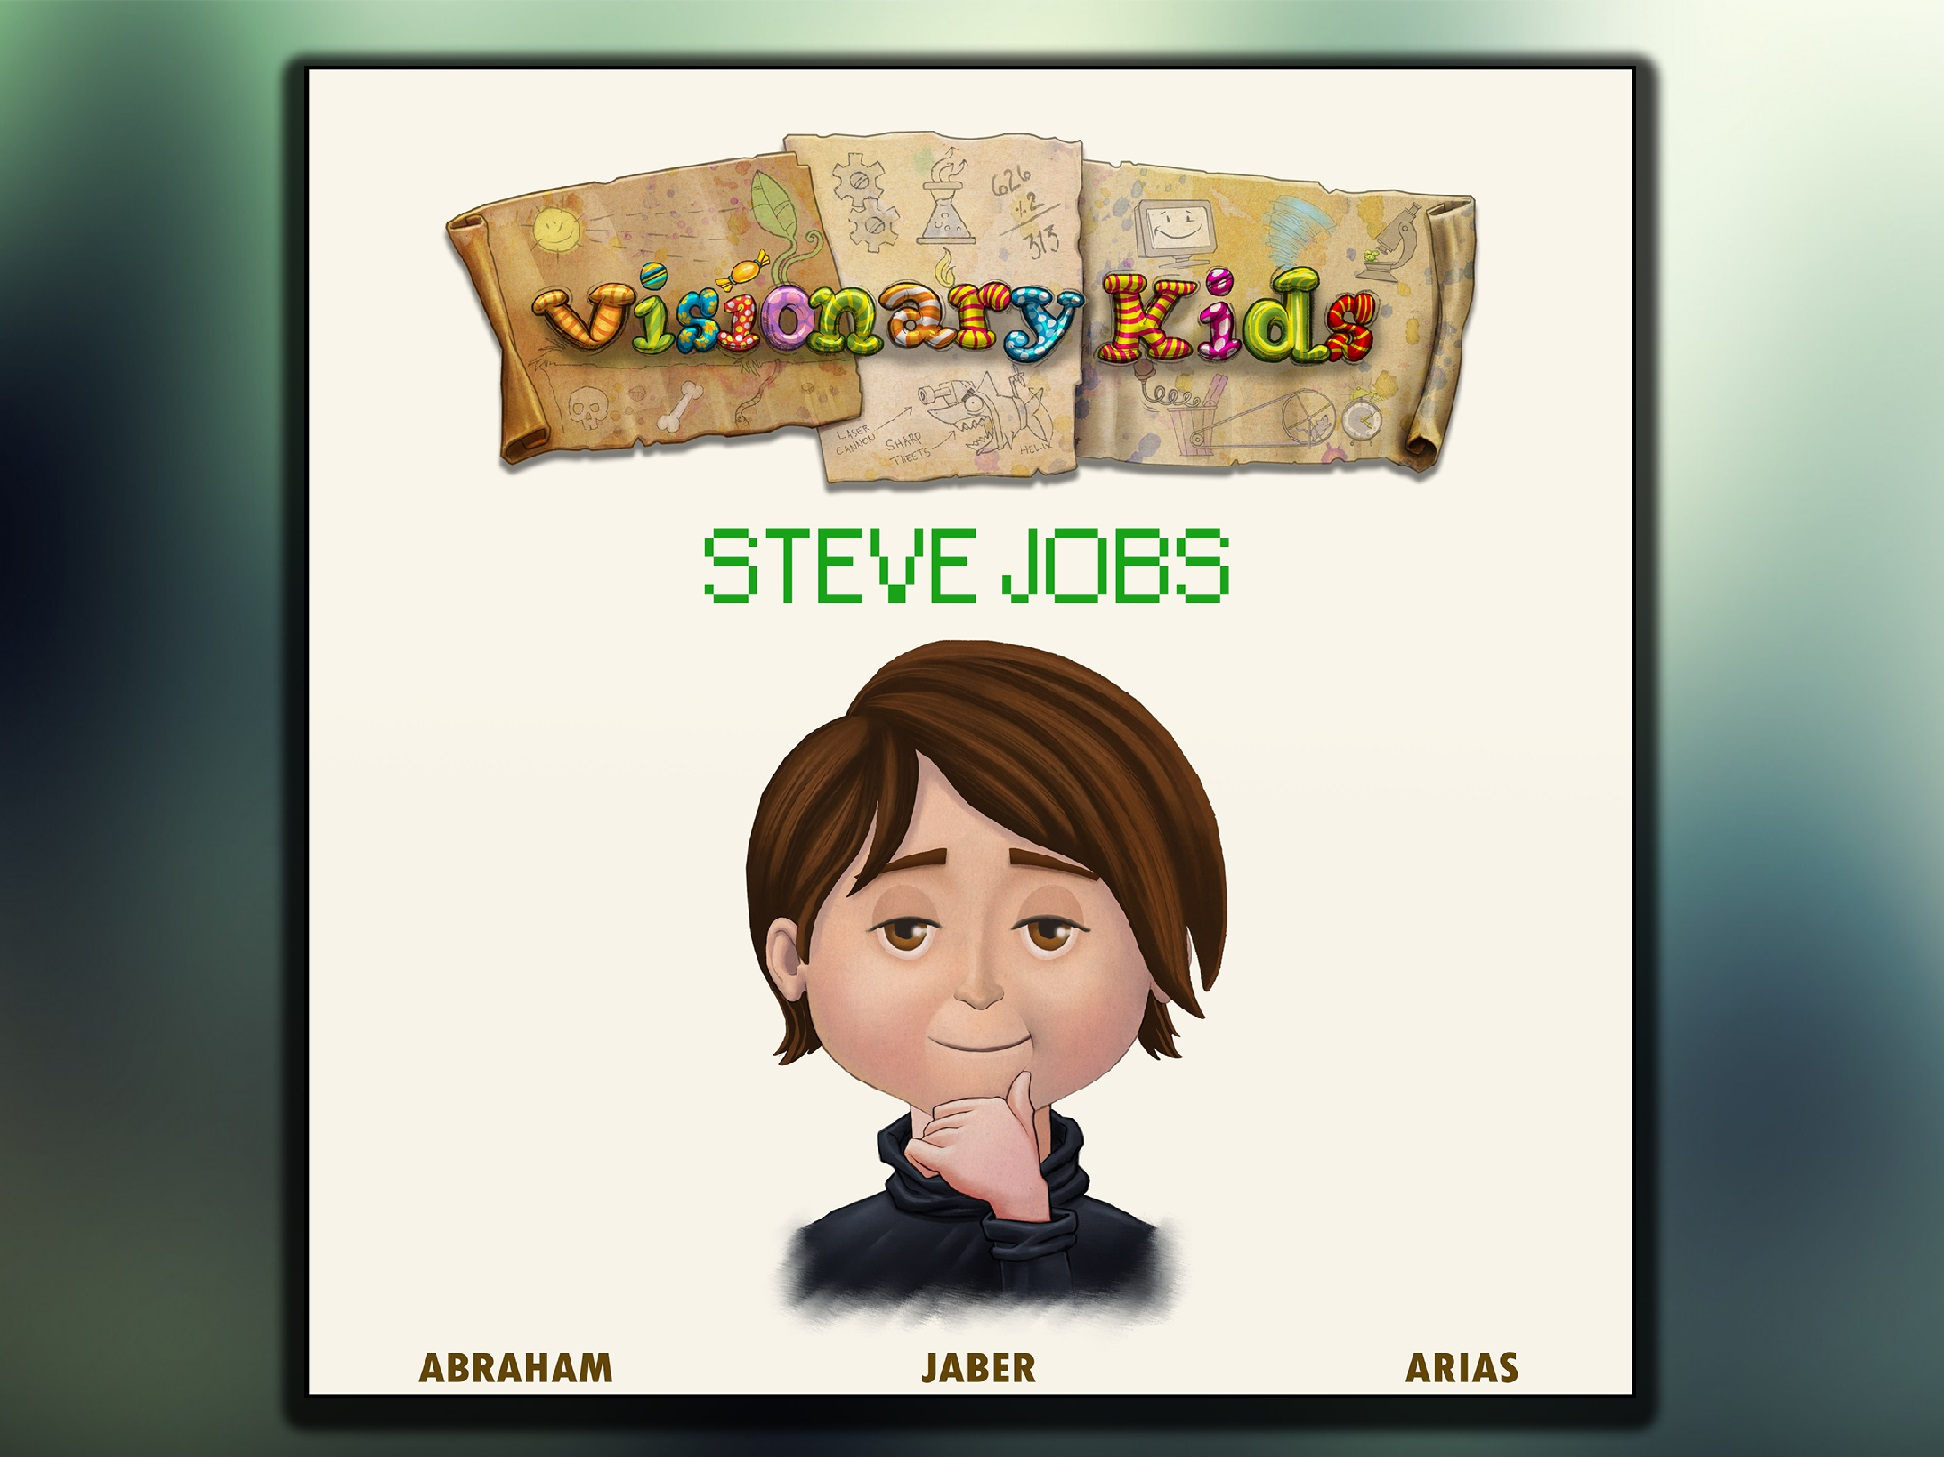 The first children's book about Steve Jobs